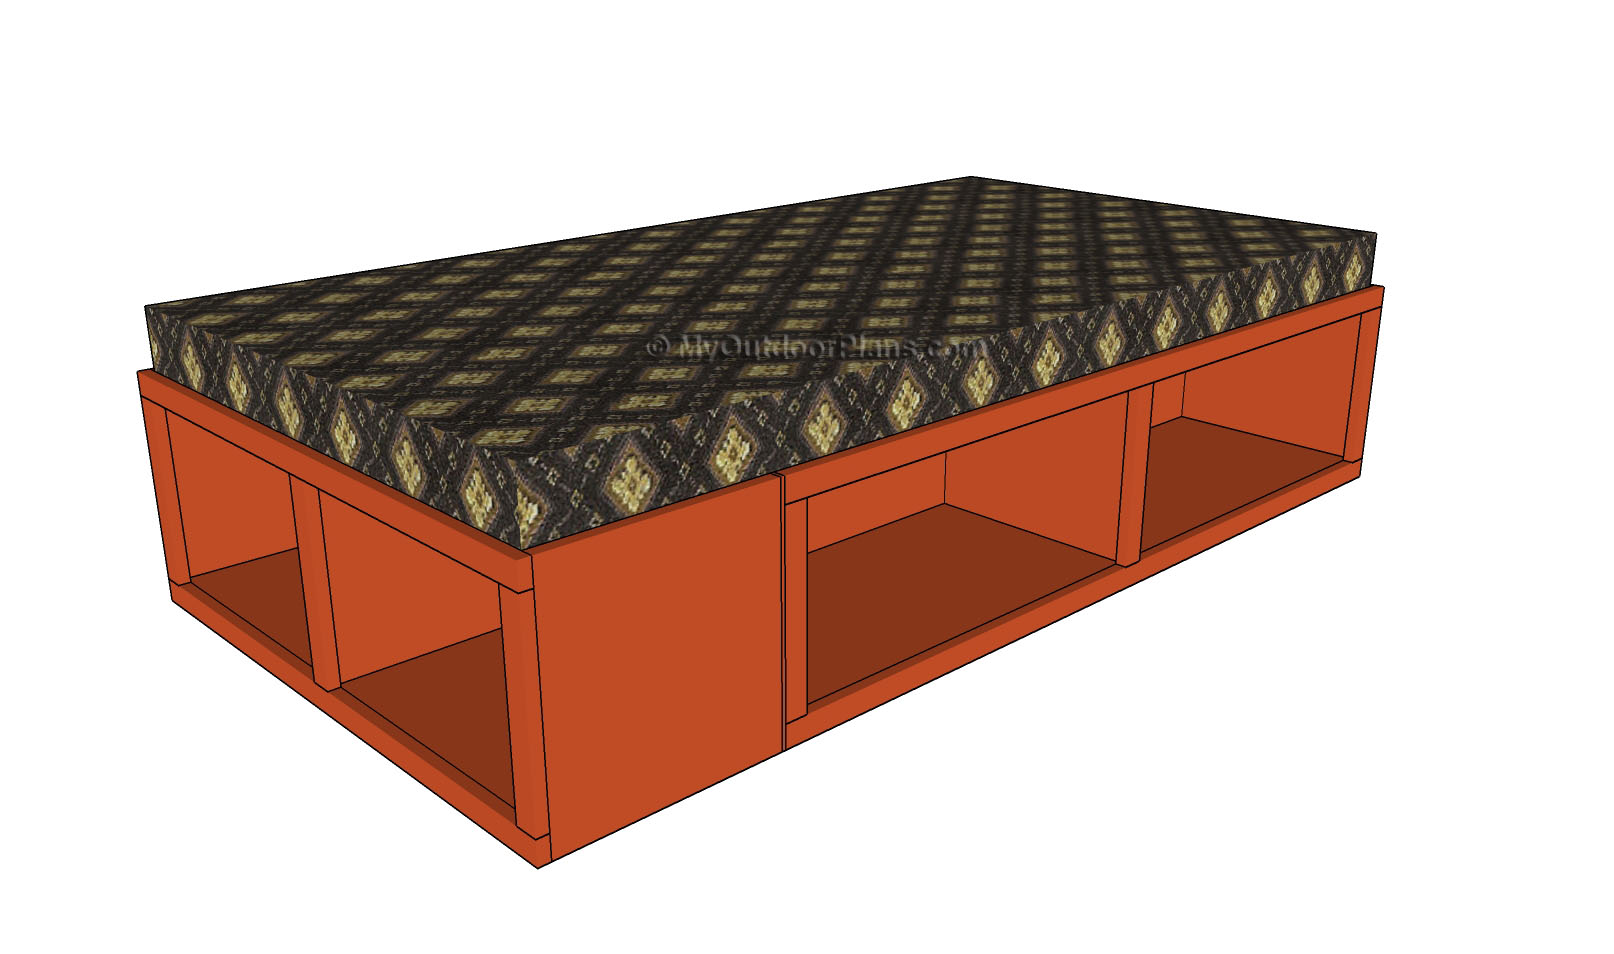 Bed Design Plans Storage Bed Plans Free Outdoor Plans Diy Shed Wooden